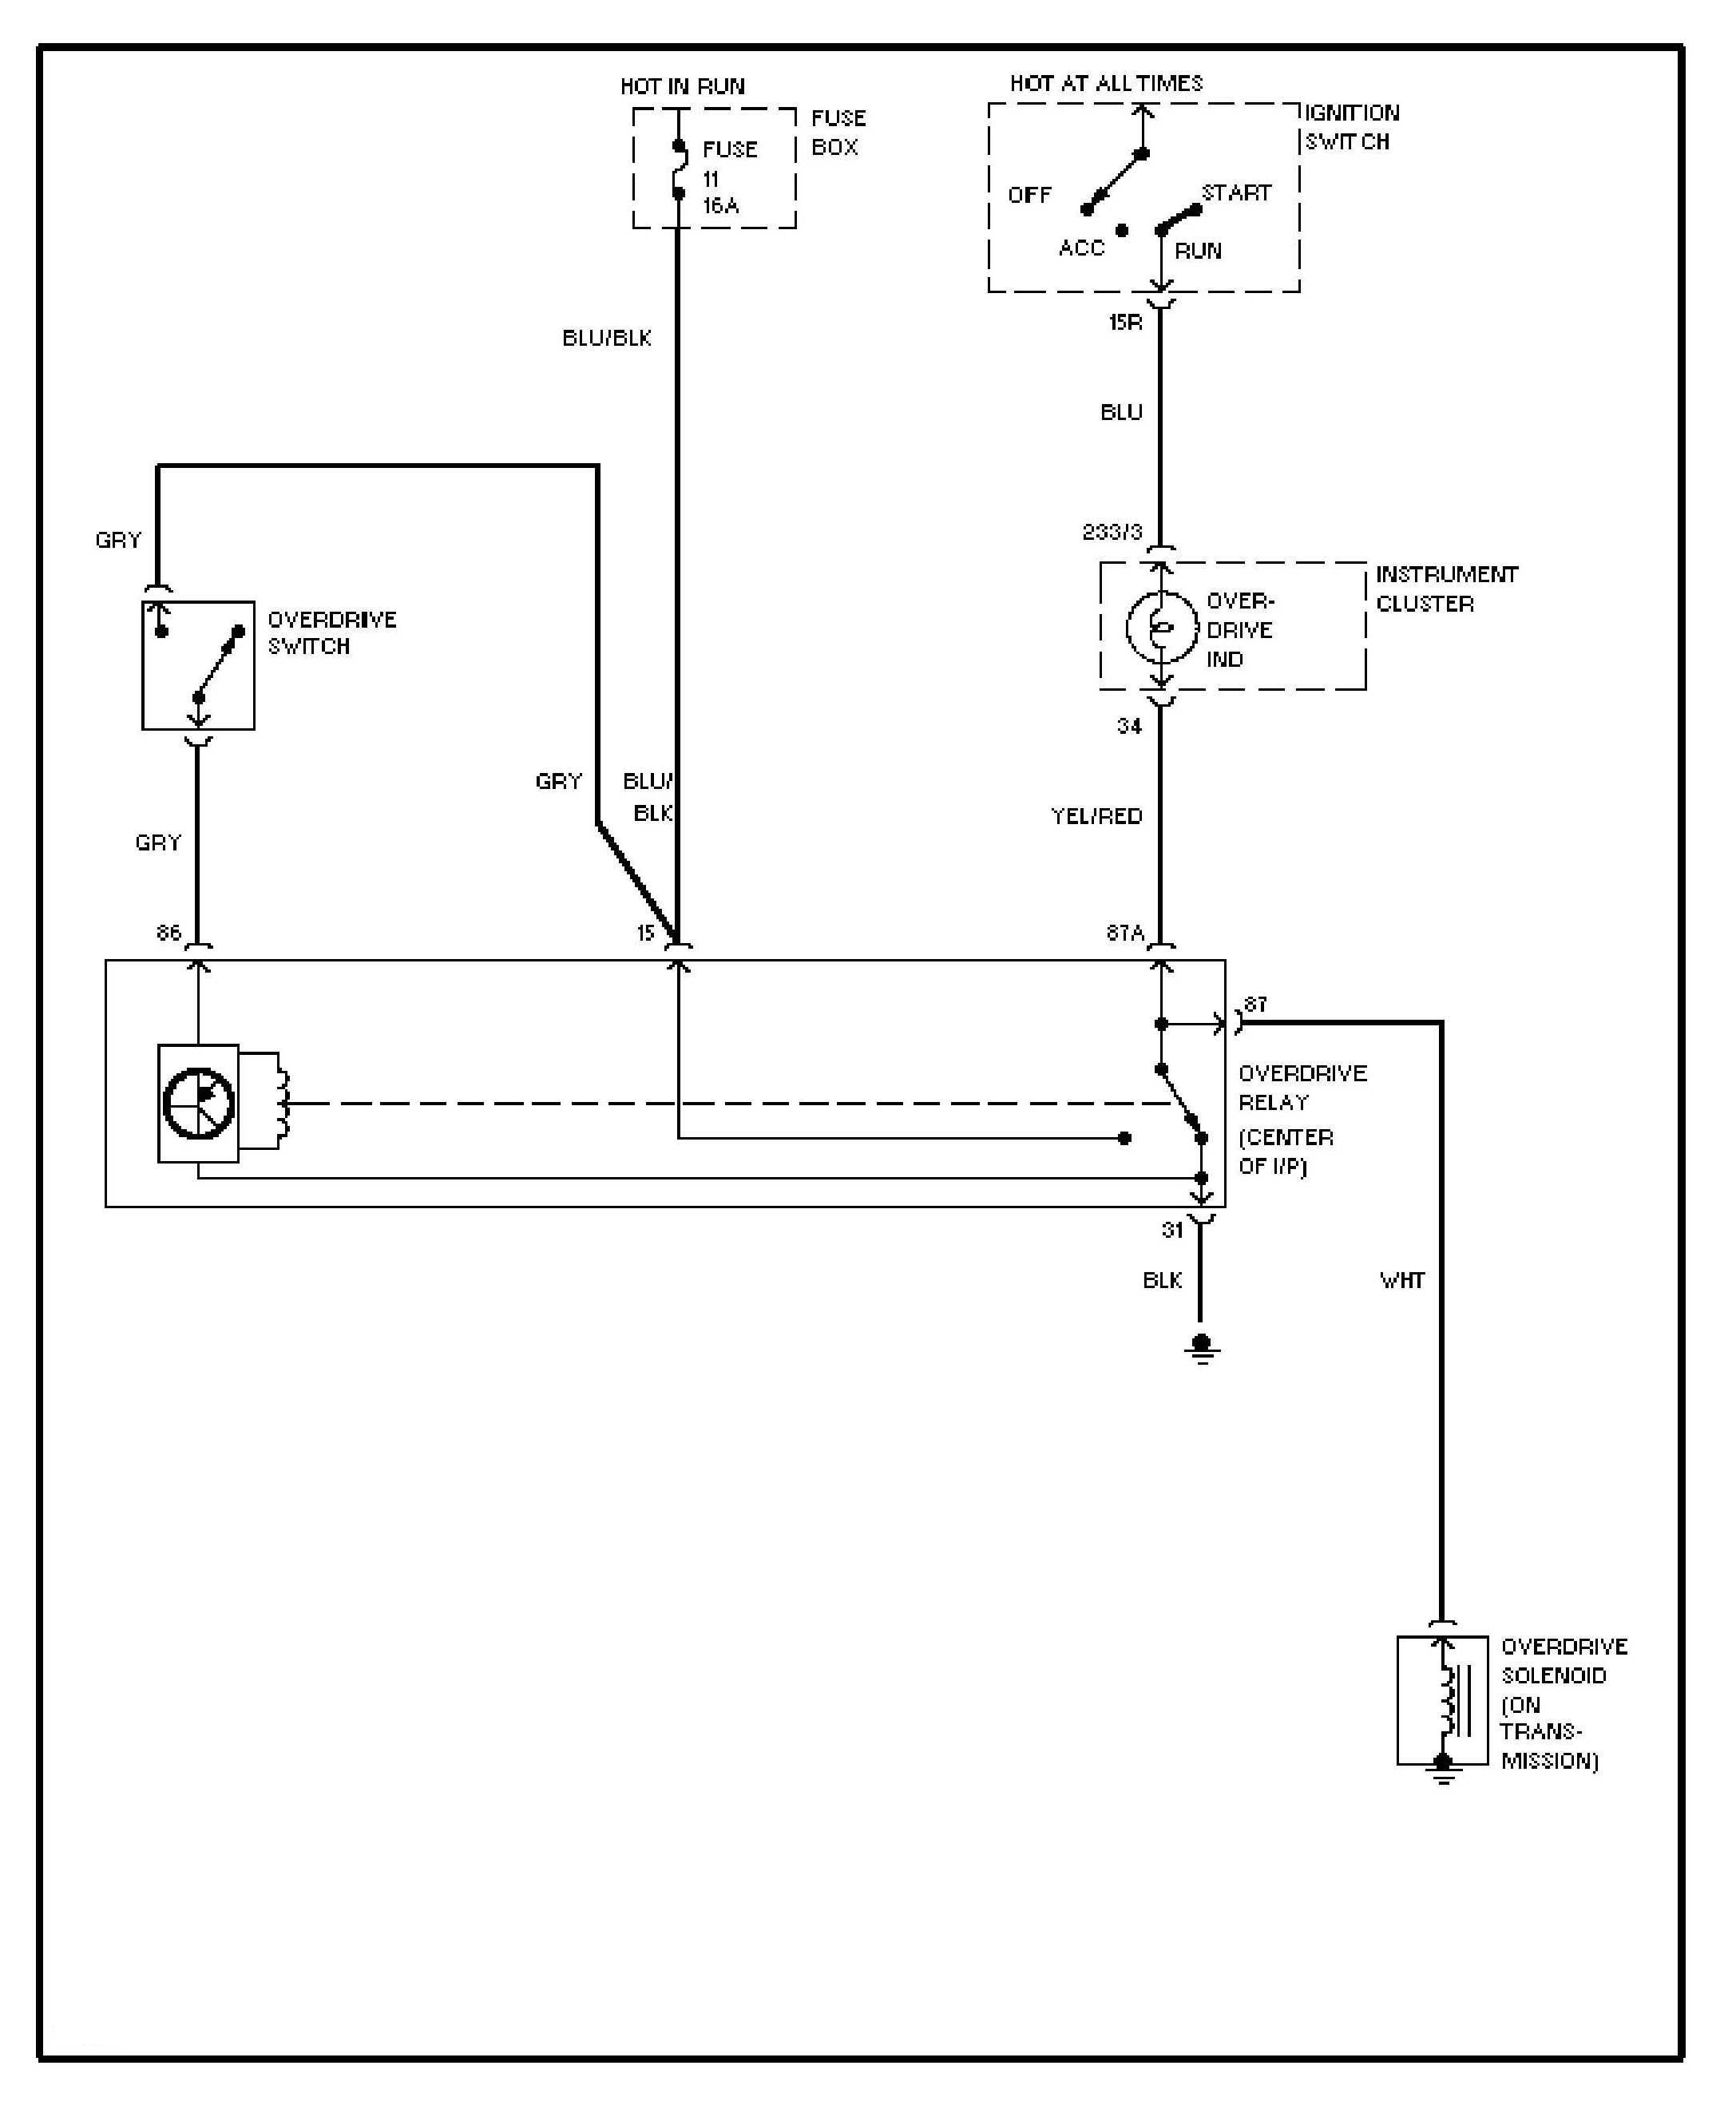 Volvo 940 Radiator Diagram Electrical Schematics 91 240 Wiring Diagrams Complete U2022 Paint